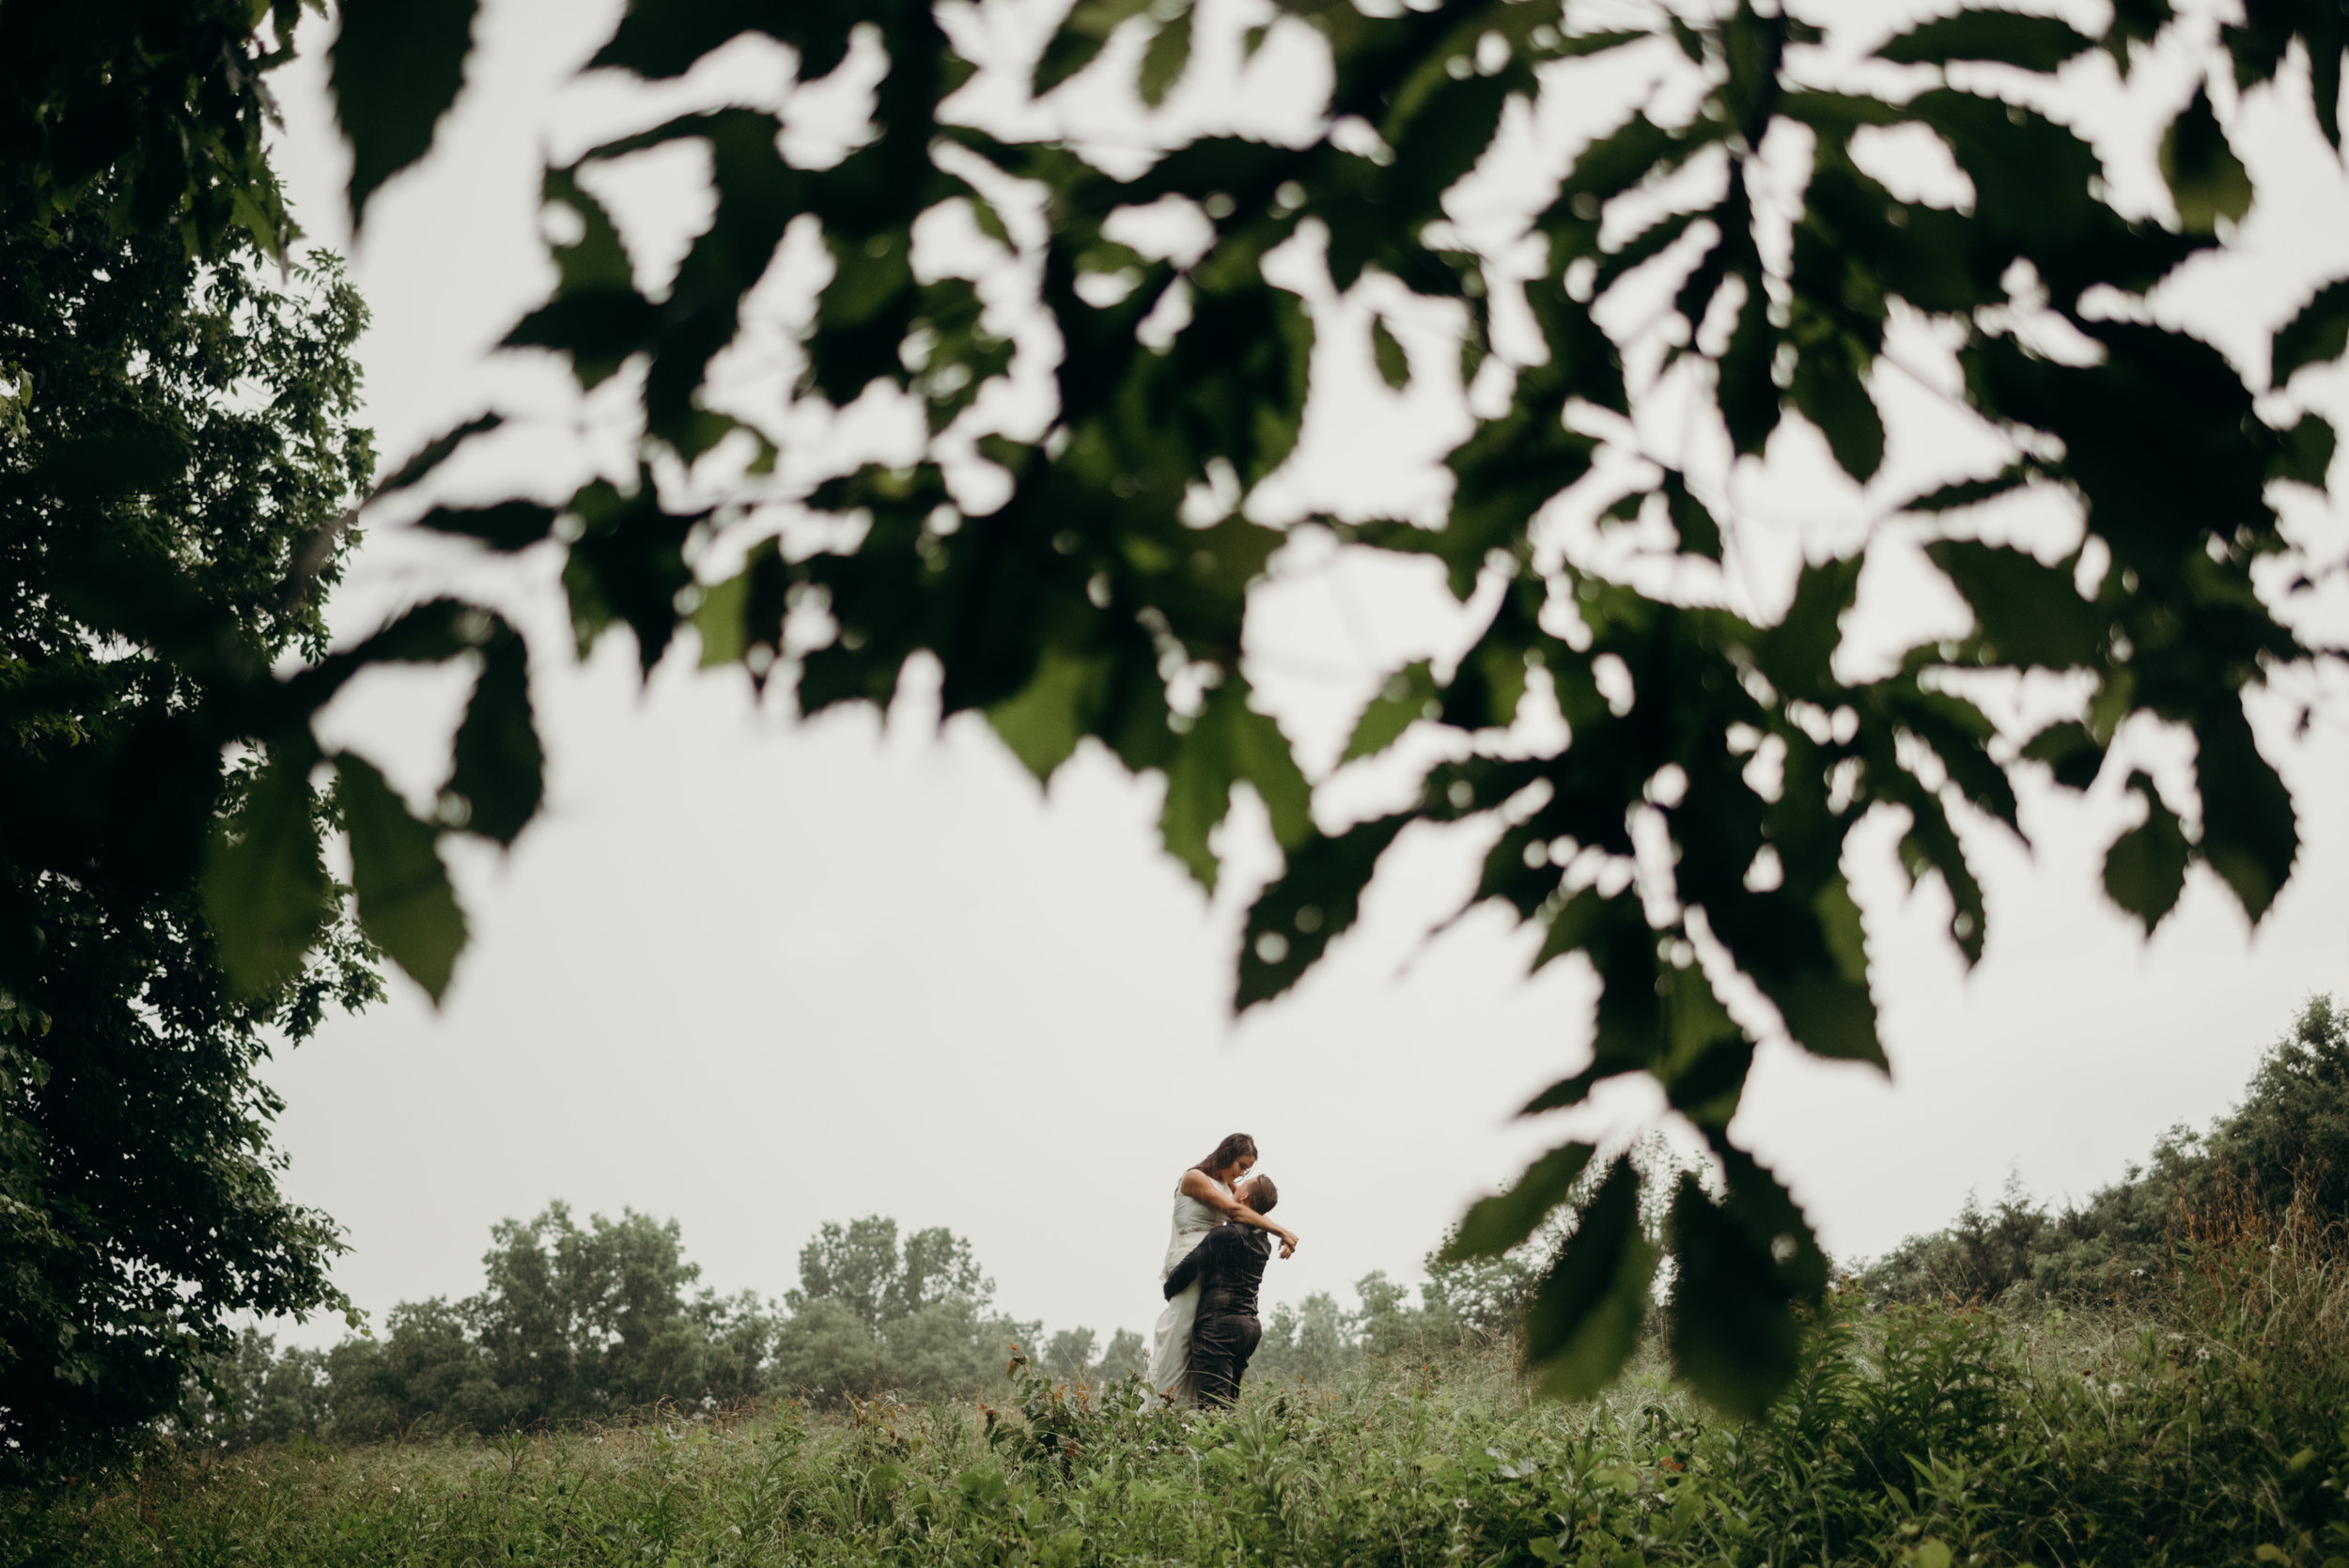 woman in suit lifting her wife into the air in a Kentucky field